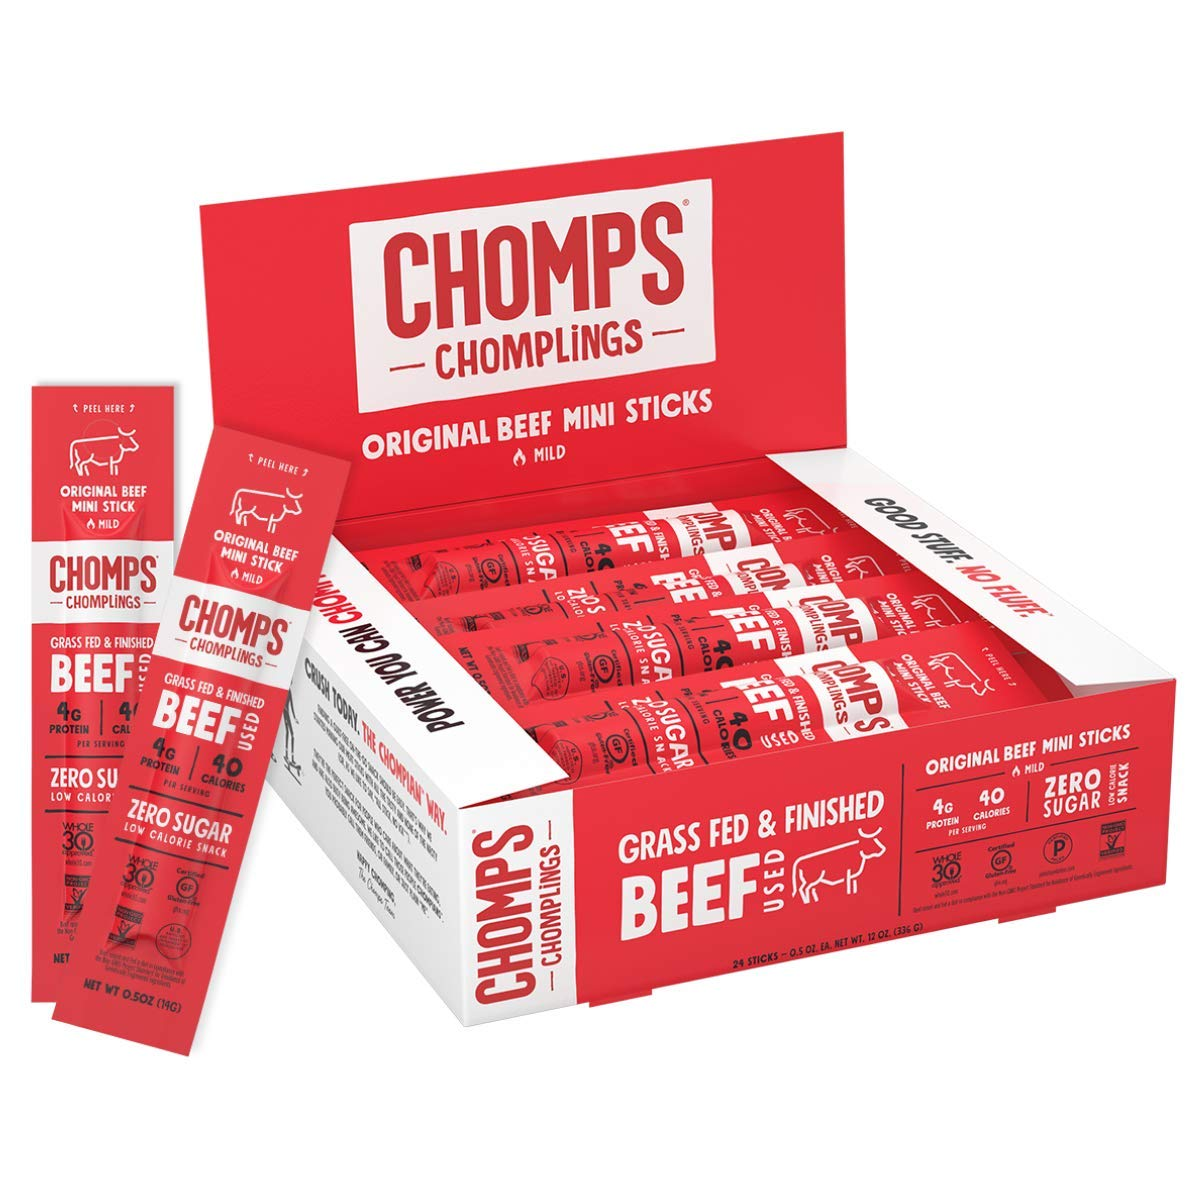 CHOMPS MINI Grass Direct store Popular shop is the lowest price challenge Fed Beef Jerky Keto Sticks Paleo Meat Snack